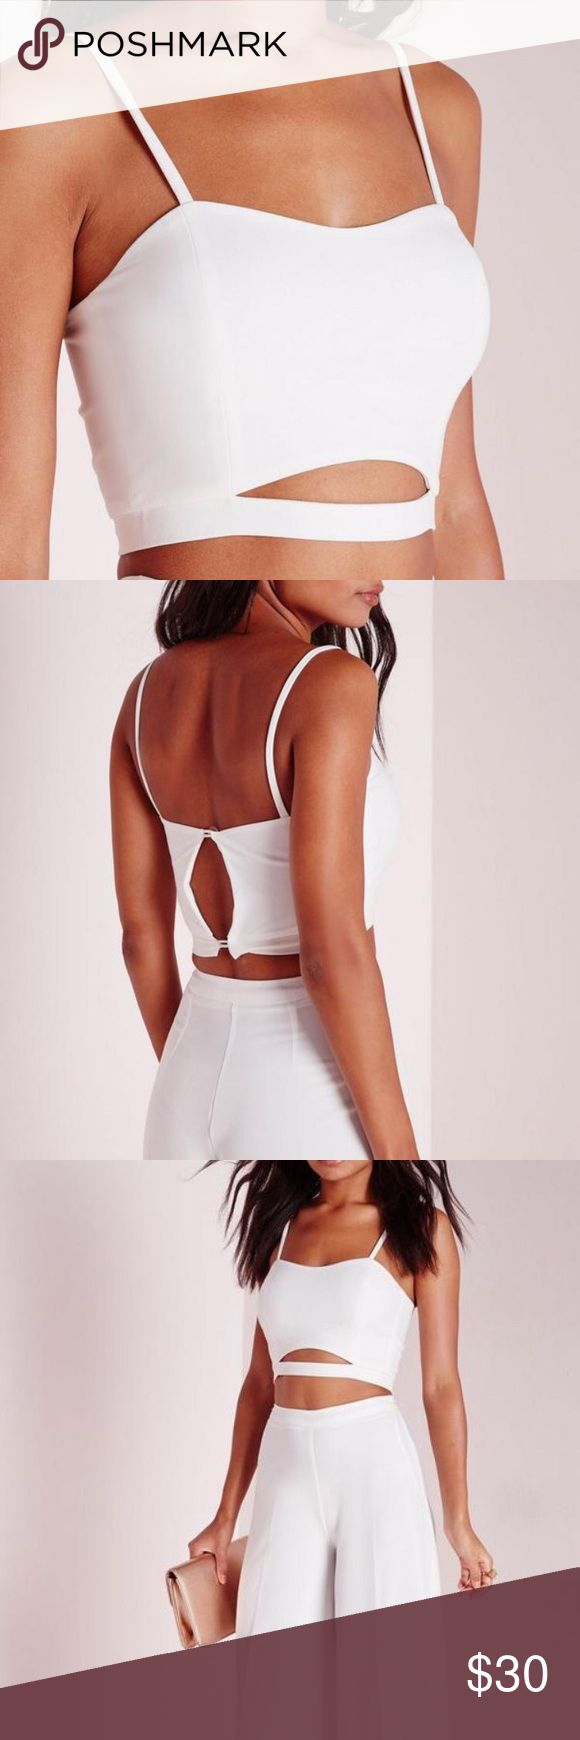 Missguided White Crepe Crop Top NWT Never worn! Cute crepe white crop top from Missguided-$33 on the site and sold out in most sizes! New with tags! Doesn't fit me (I bought the wrong size) I'm usually a 4-6 and the 8 is big but seems like it would fit a normal 8 or a bigger cup size! Missguided Tops Crop Tops